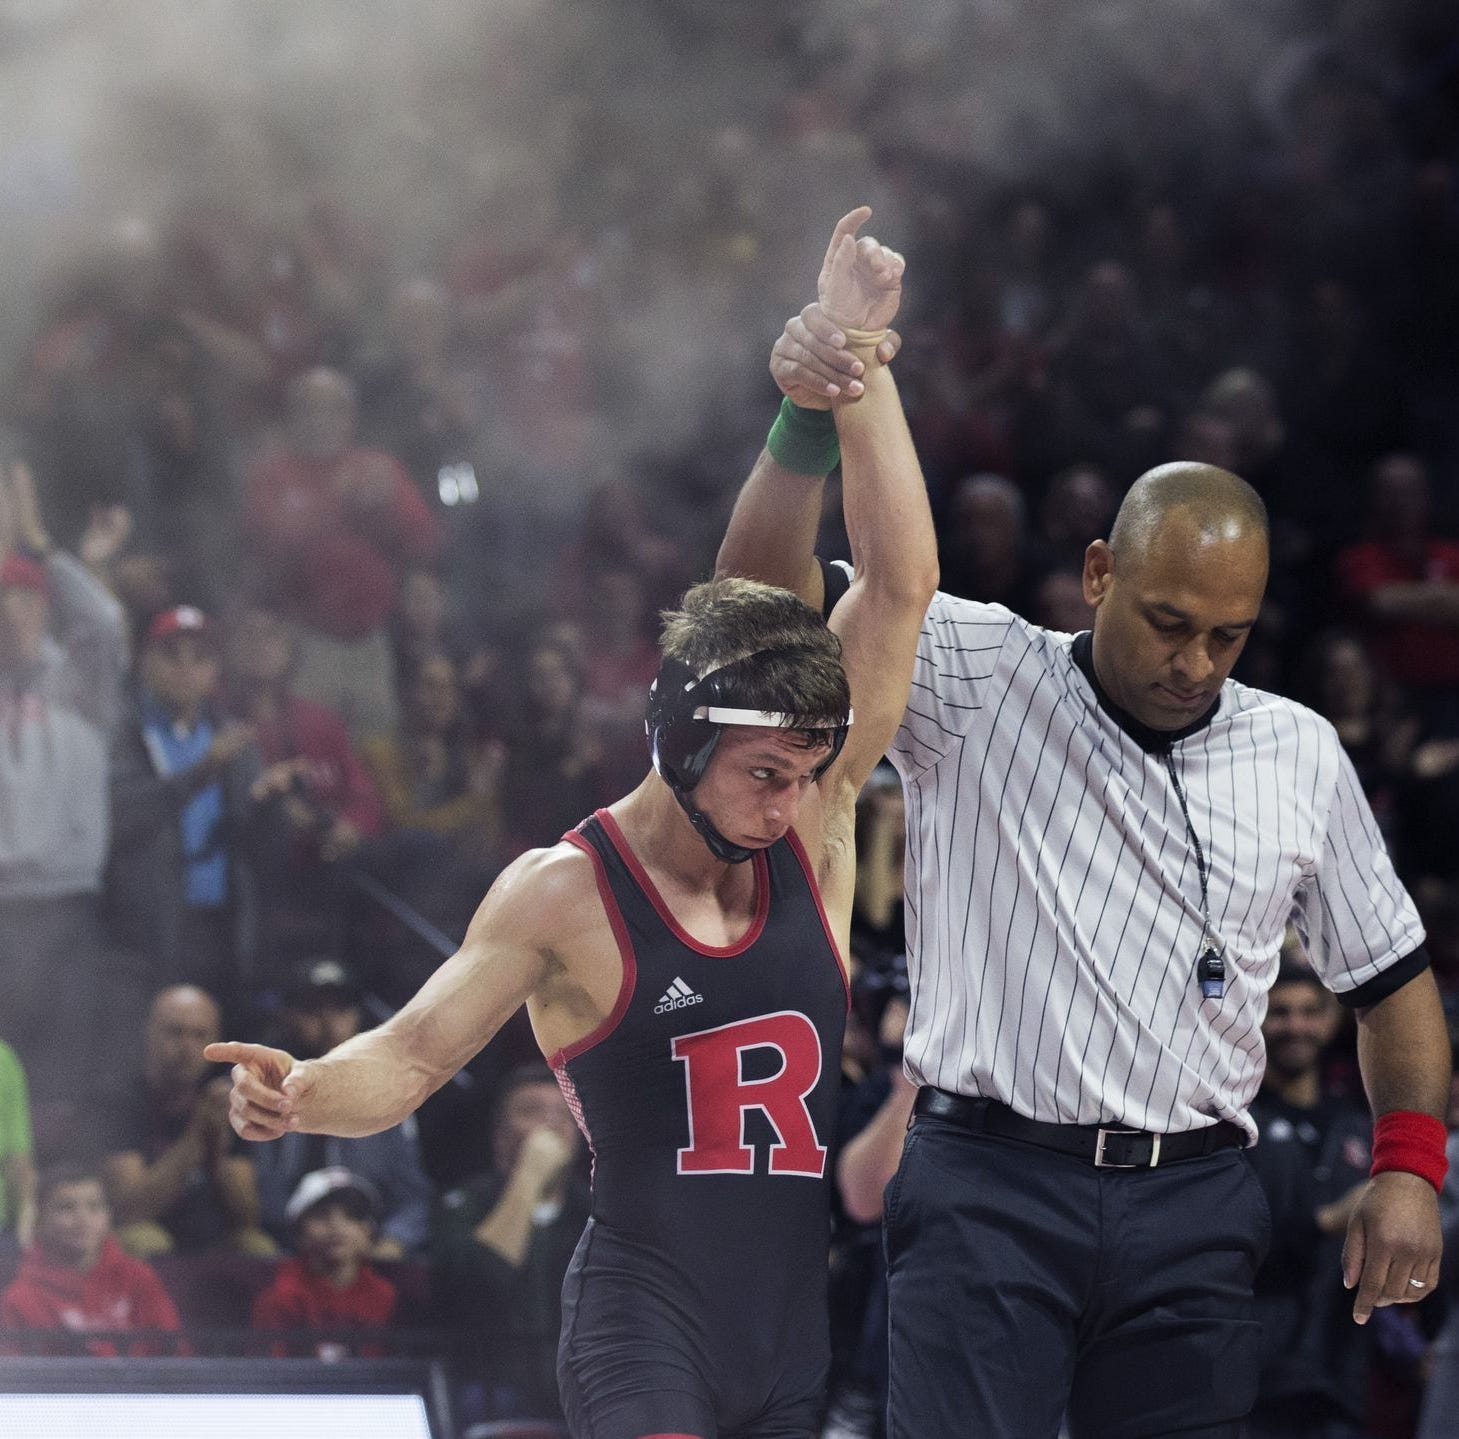 Rutgers wrestling: Nick Suriano, Anthony Ashnault continue dominance as RU downs Purdue